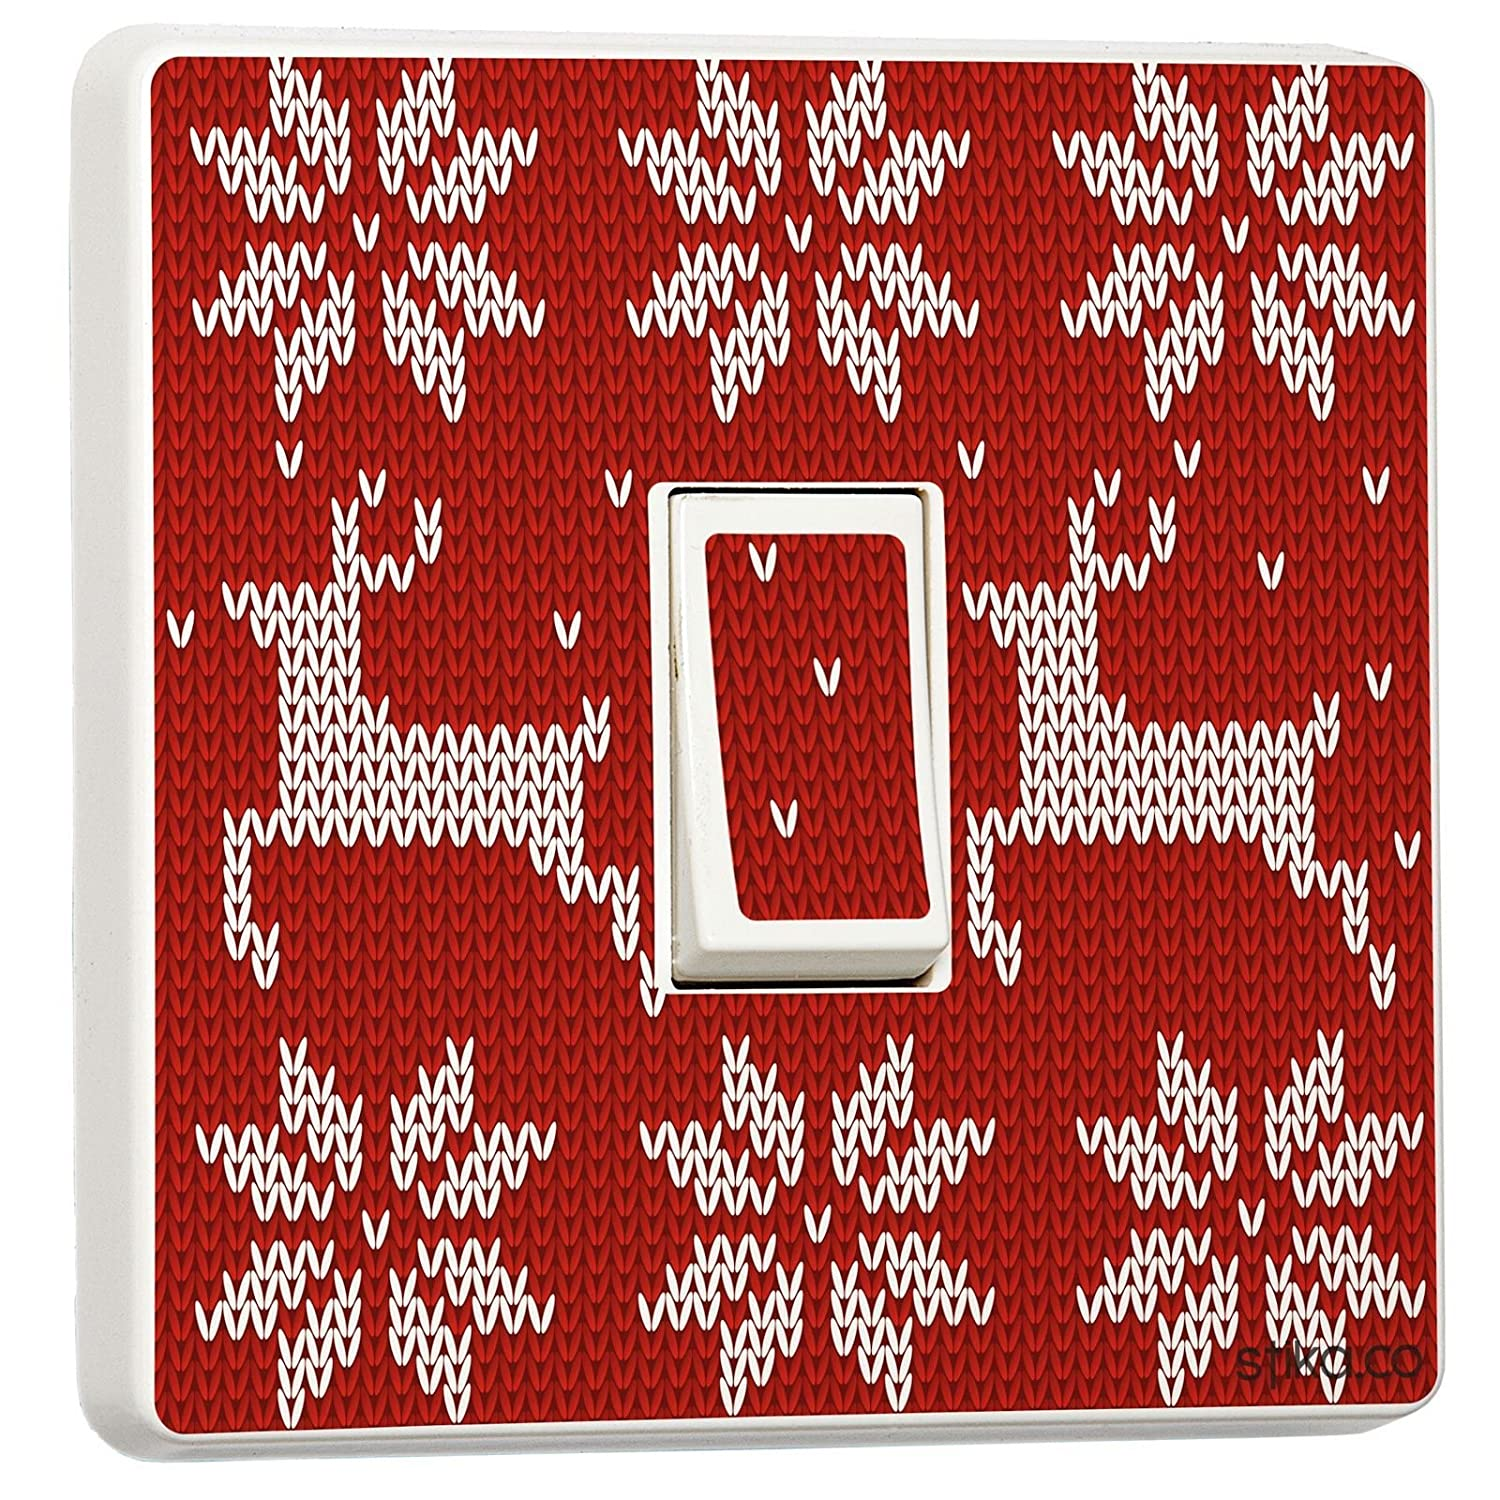 Christmas Red Knit Design Double Light Switch Cover Skin Sticker stika.co